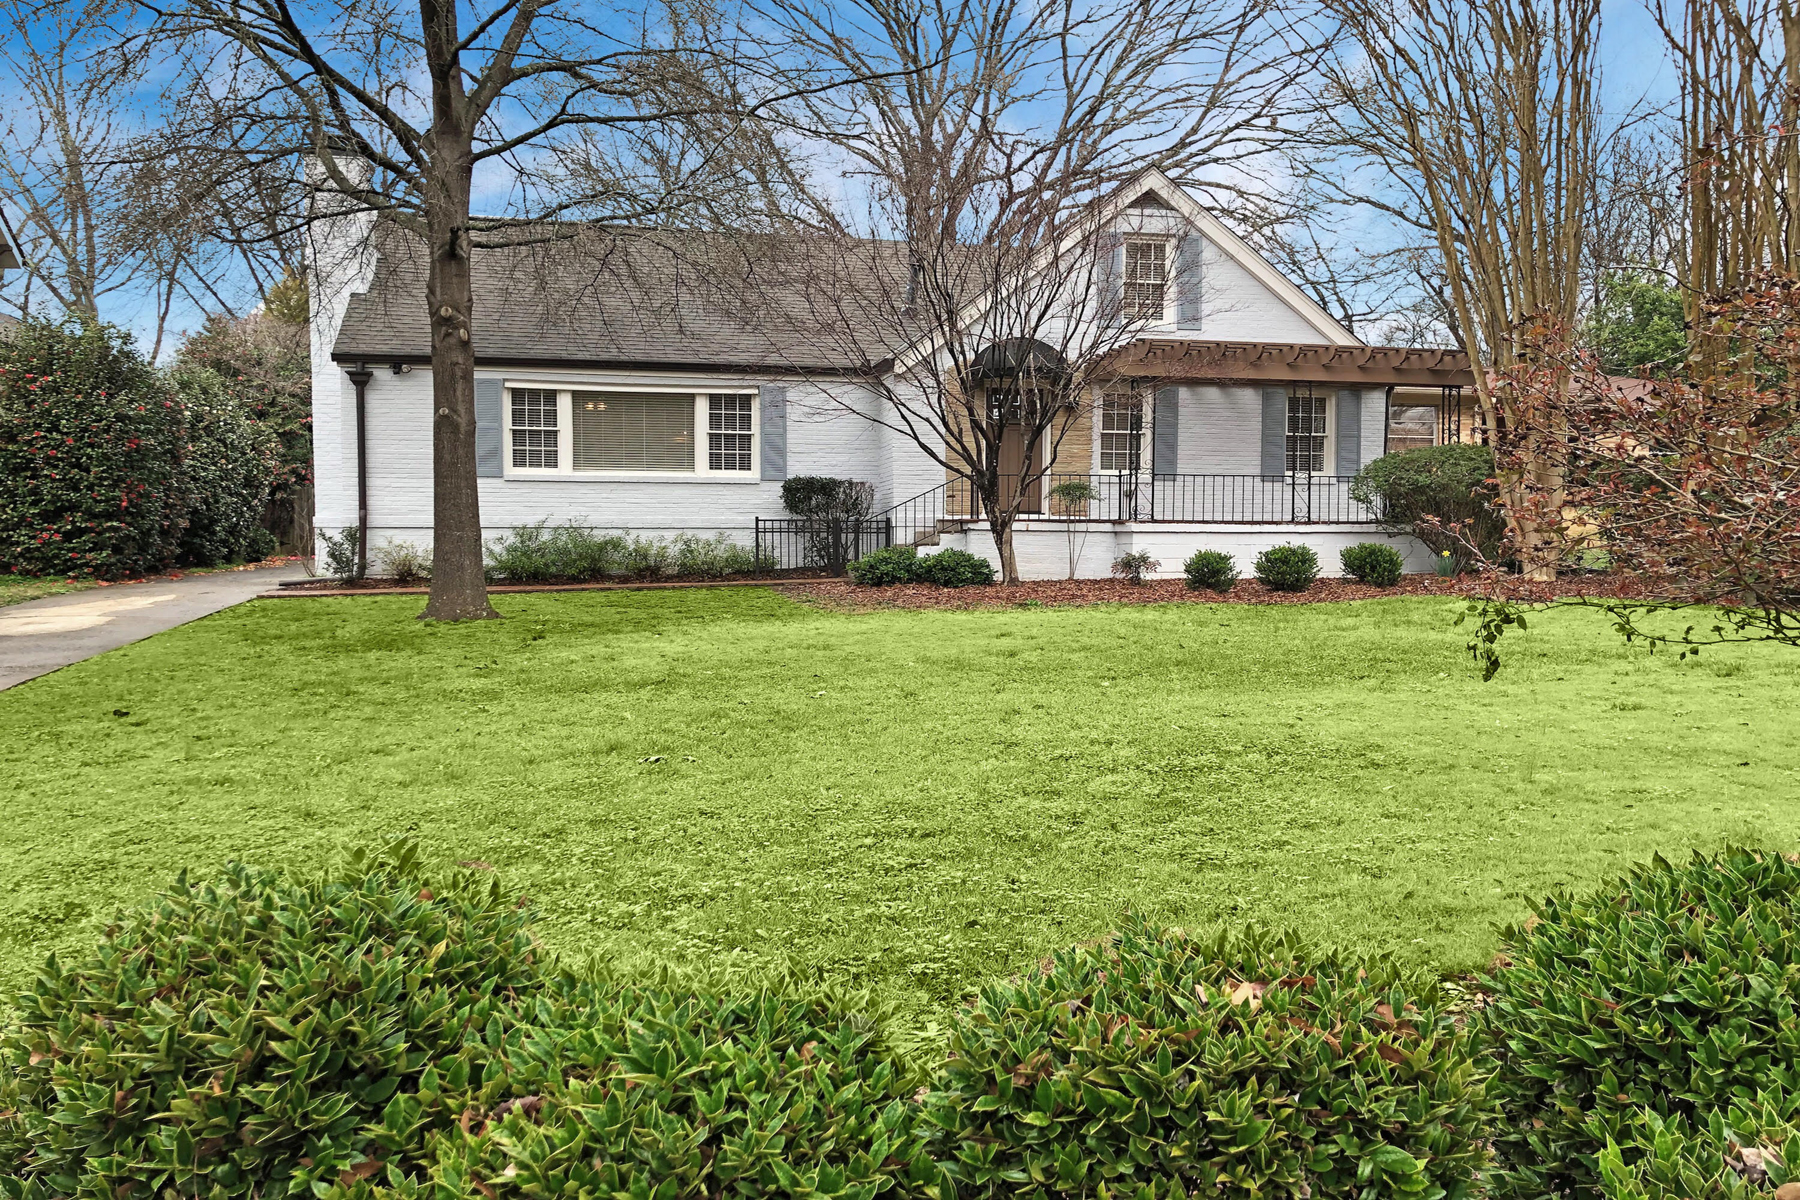 Single Family Home for Sale at Perfect All Brick Bungalow In The Heart Of Virginia Highland 1336 Briarwood Drive NE, Virginia Highland, Atlanta, Georgia, 30306 United States